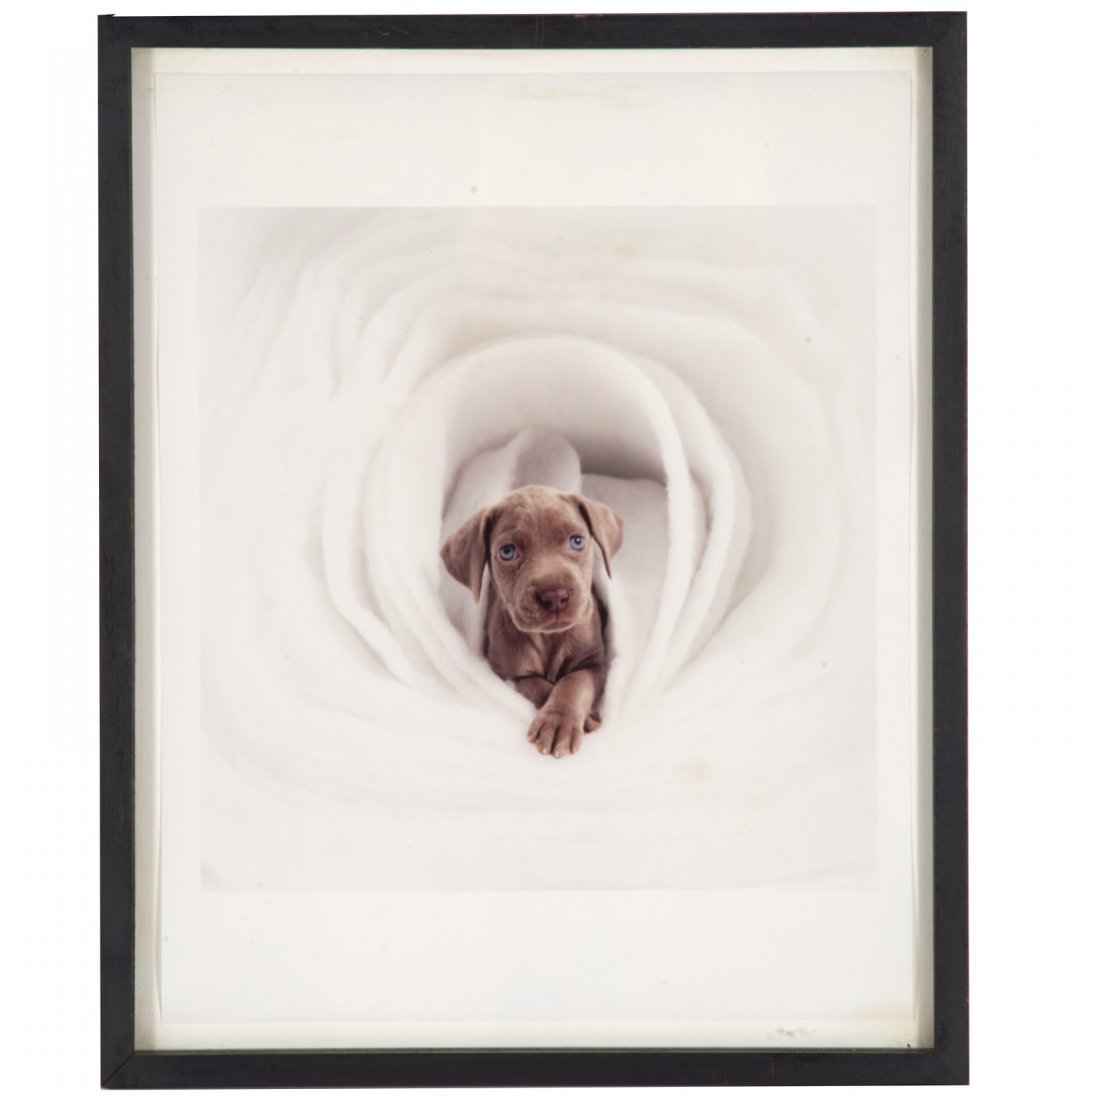 William Wegman, photograph